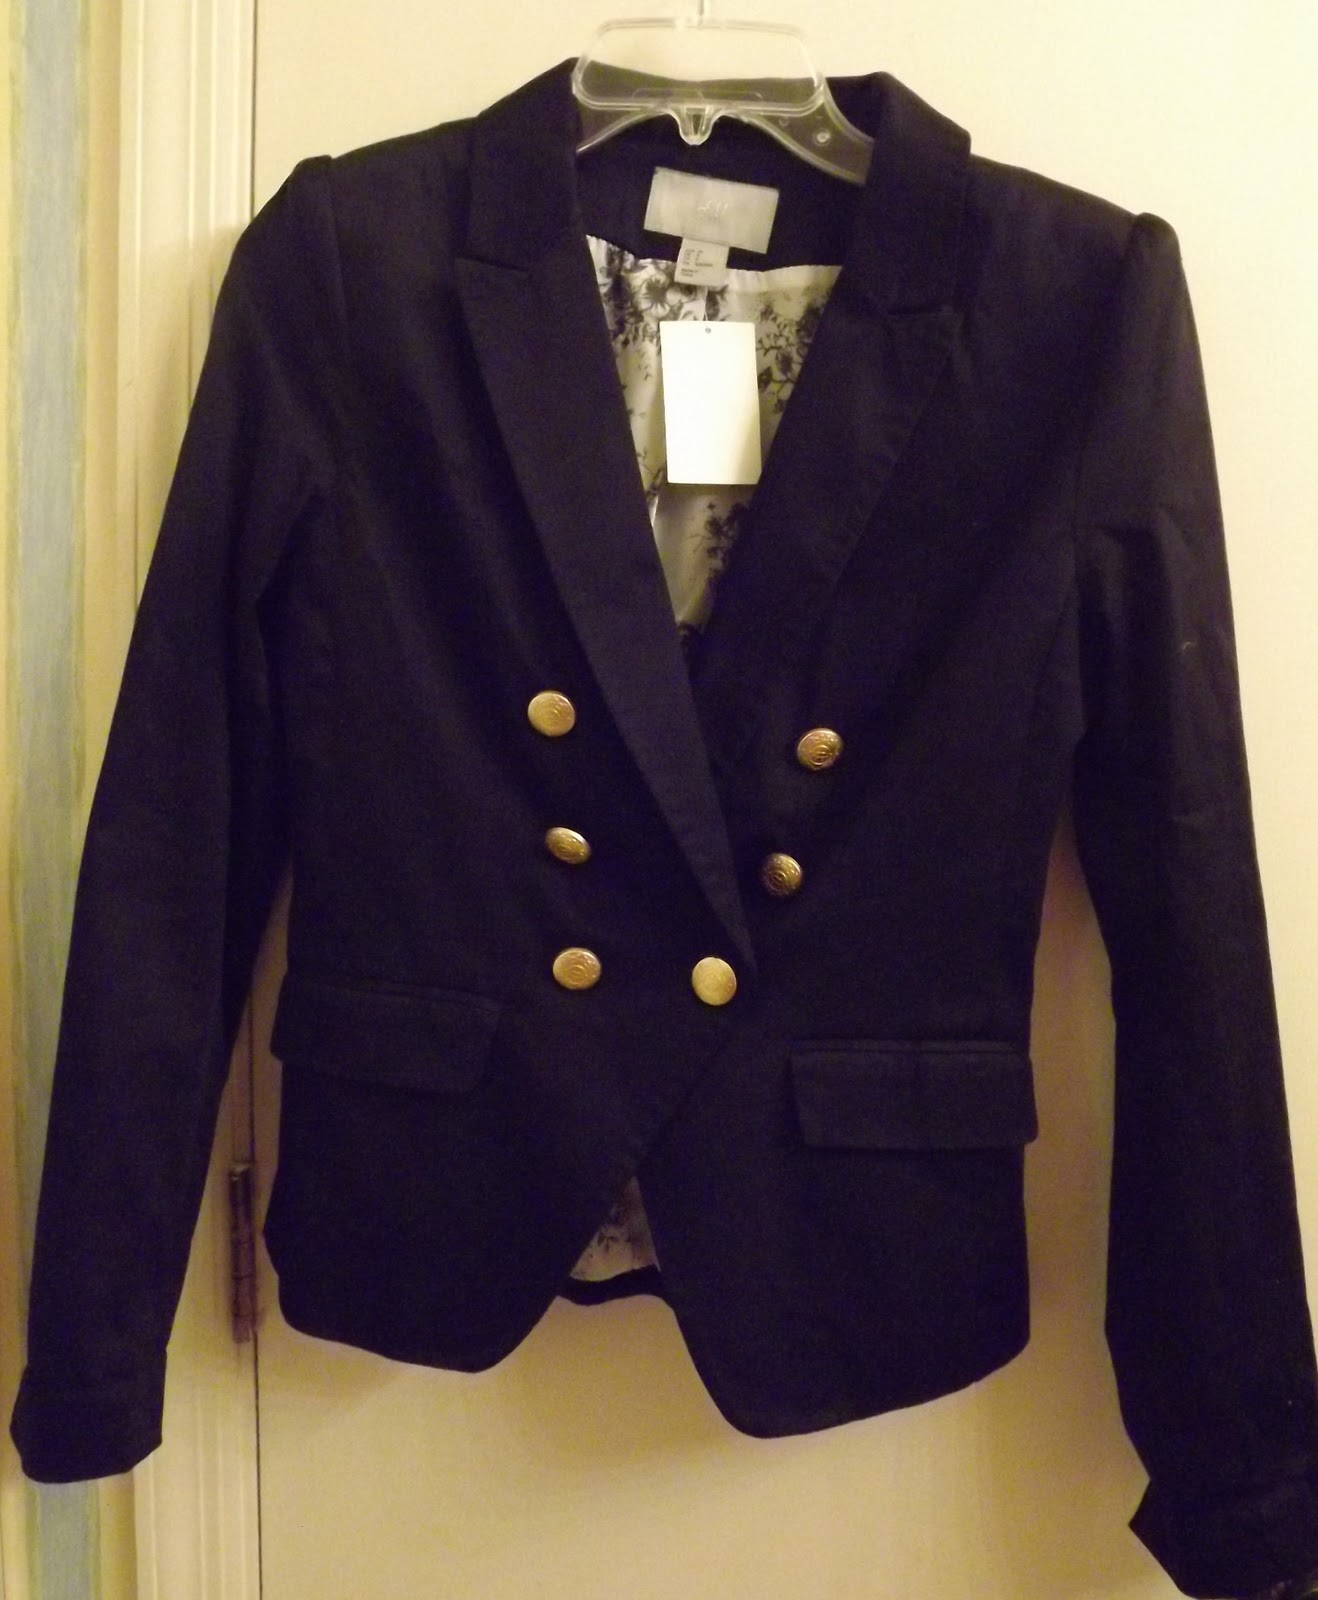 5e01e22cc547c3 And for my fave purchase: navy blazer with gold buttons!!! Will be good  with jeans and over dresses! Just read in InStyle this week that navy  blazers are ...